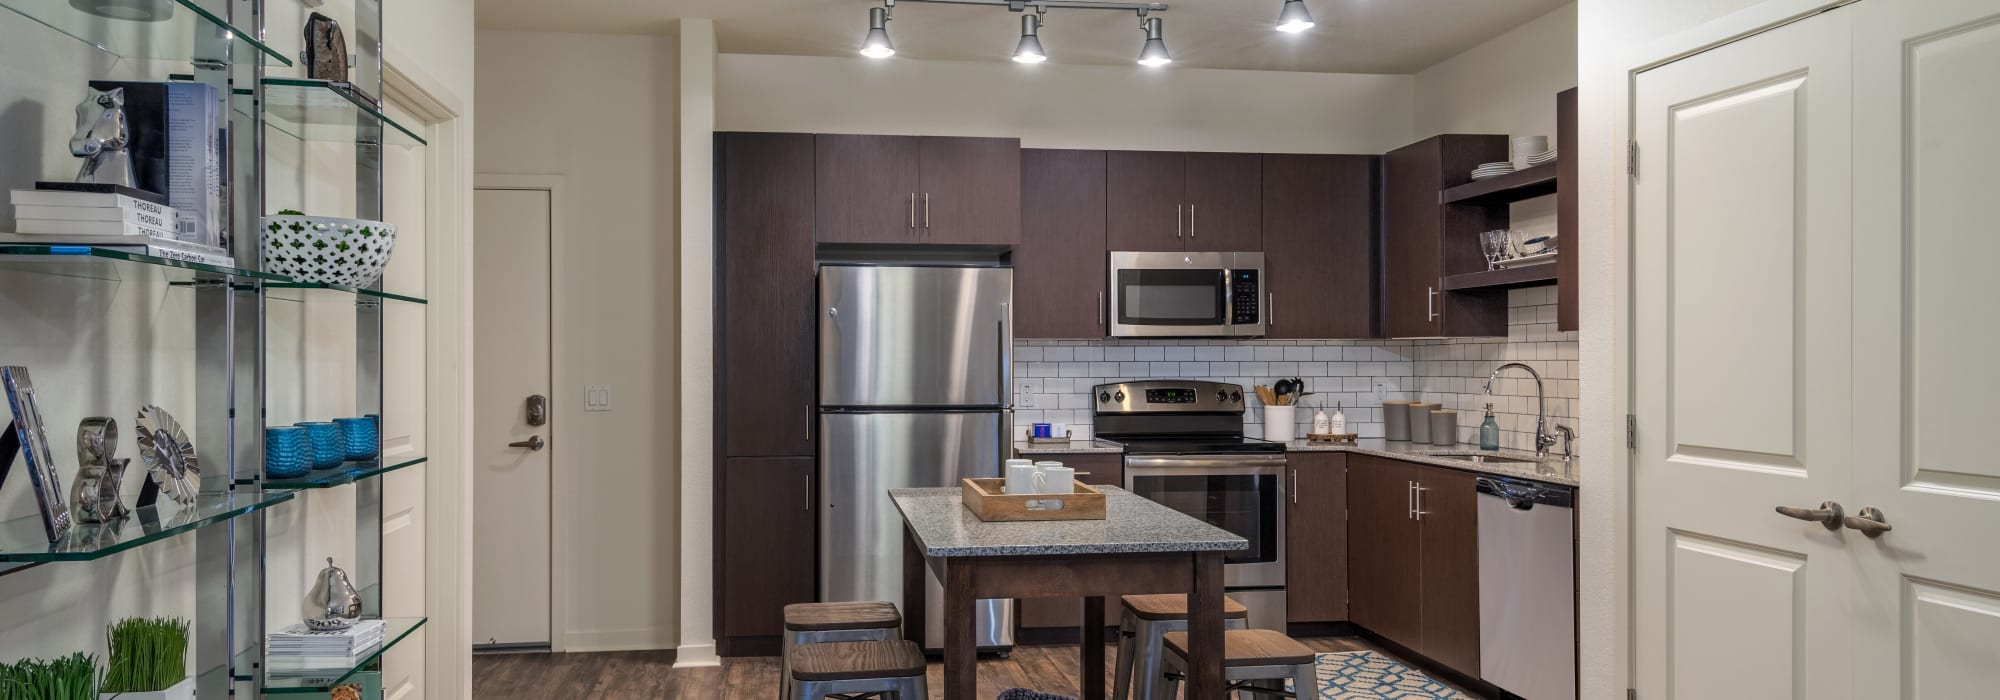 Modern kitchen with dark wood cabinetry in model home at Capital Place in Phoenix, Arizona